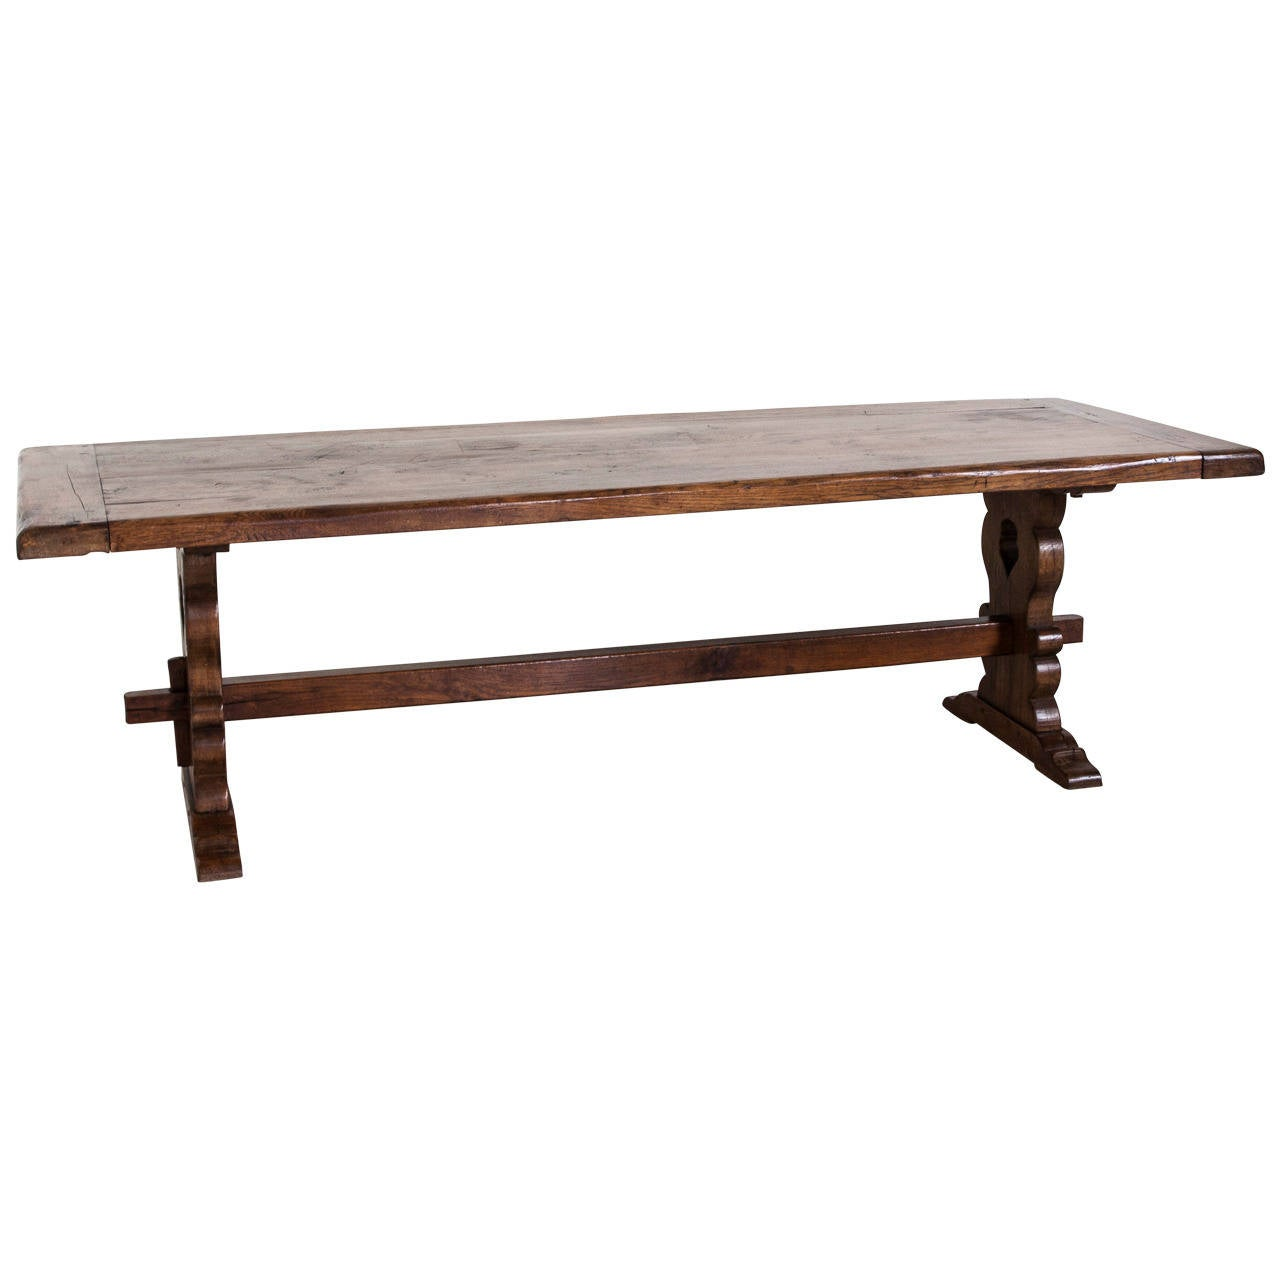 Antique french solid oak trestle dining table from for Solid oak dining table